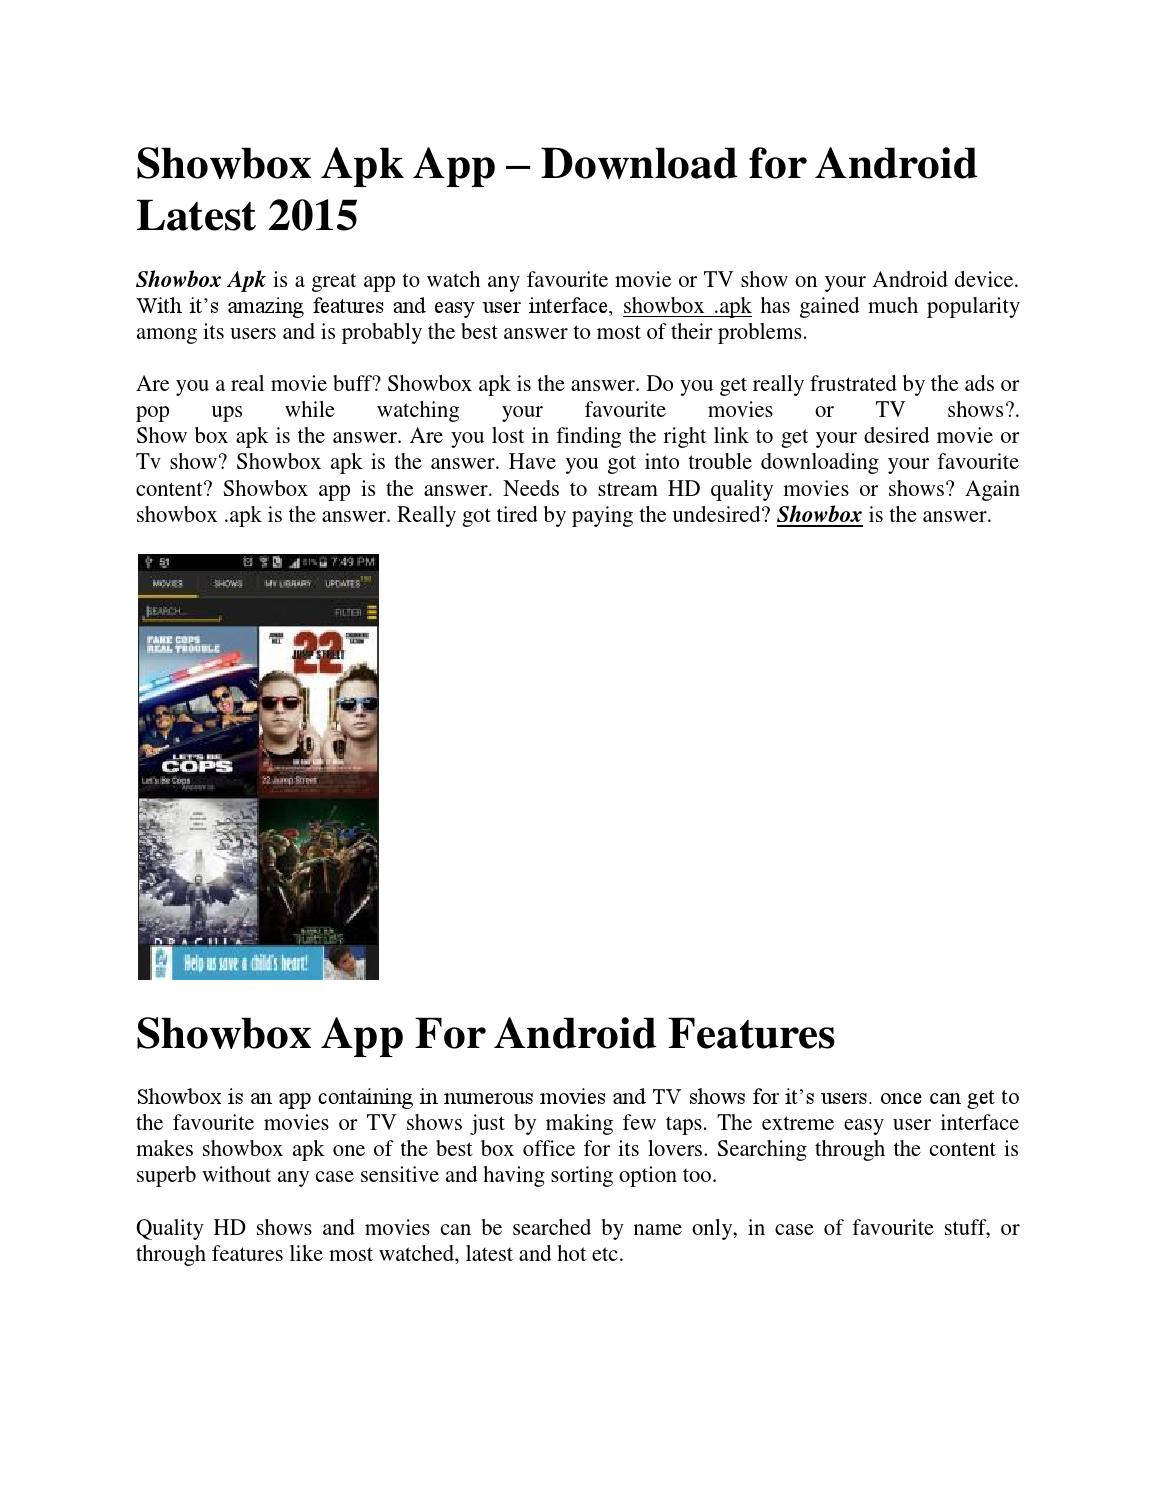 showbox apk app � download for android latest 2015 by